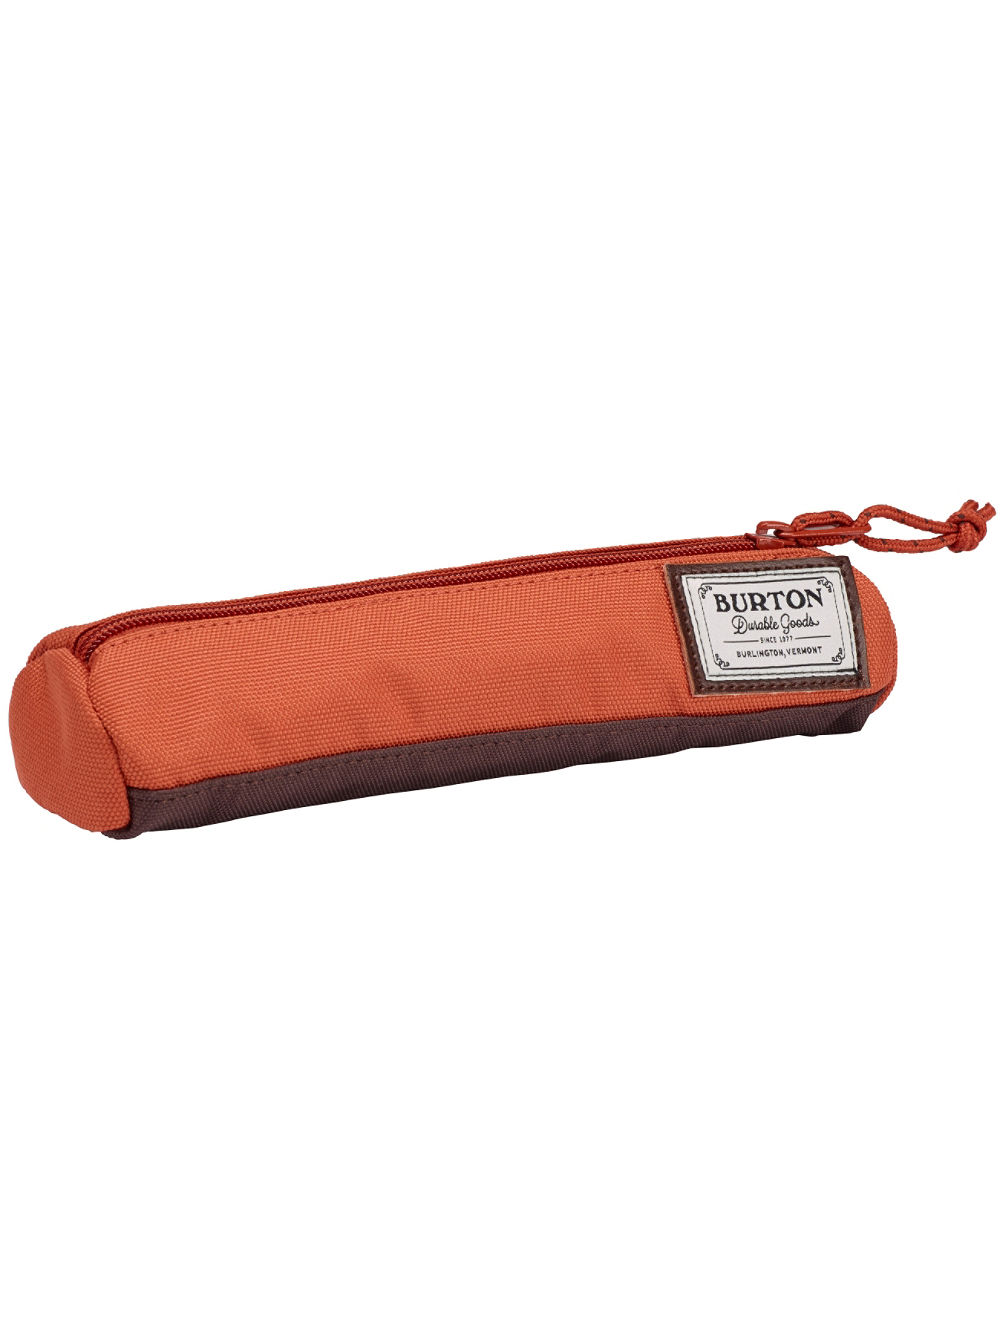 token-accessory-pencilcase